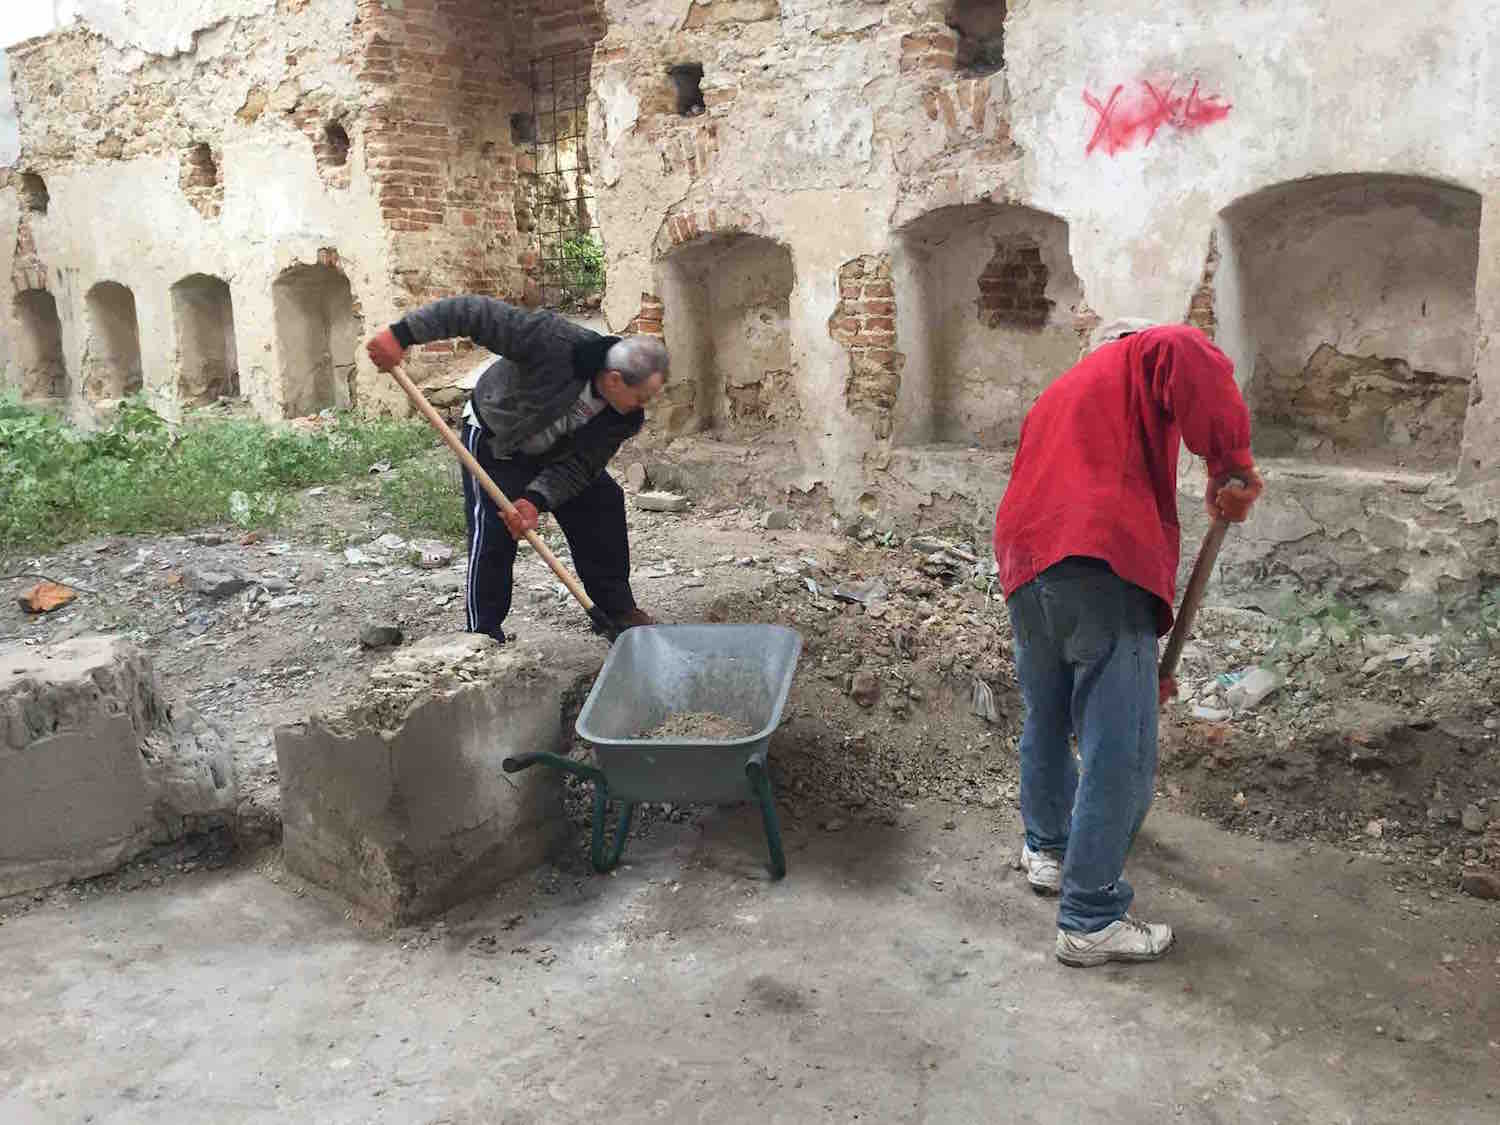 Removing debris from the interior of the synagogue. Photo courtesy of Grigori Arshinov